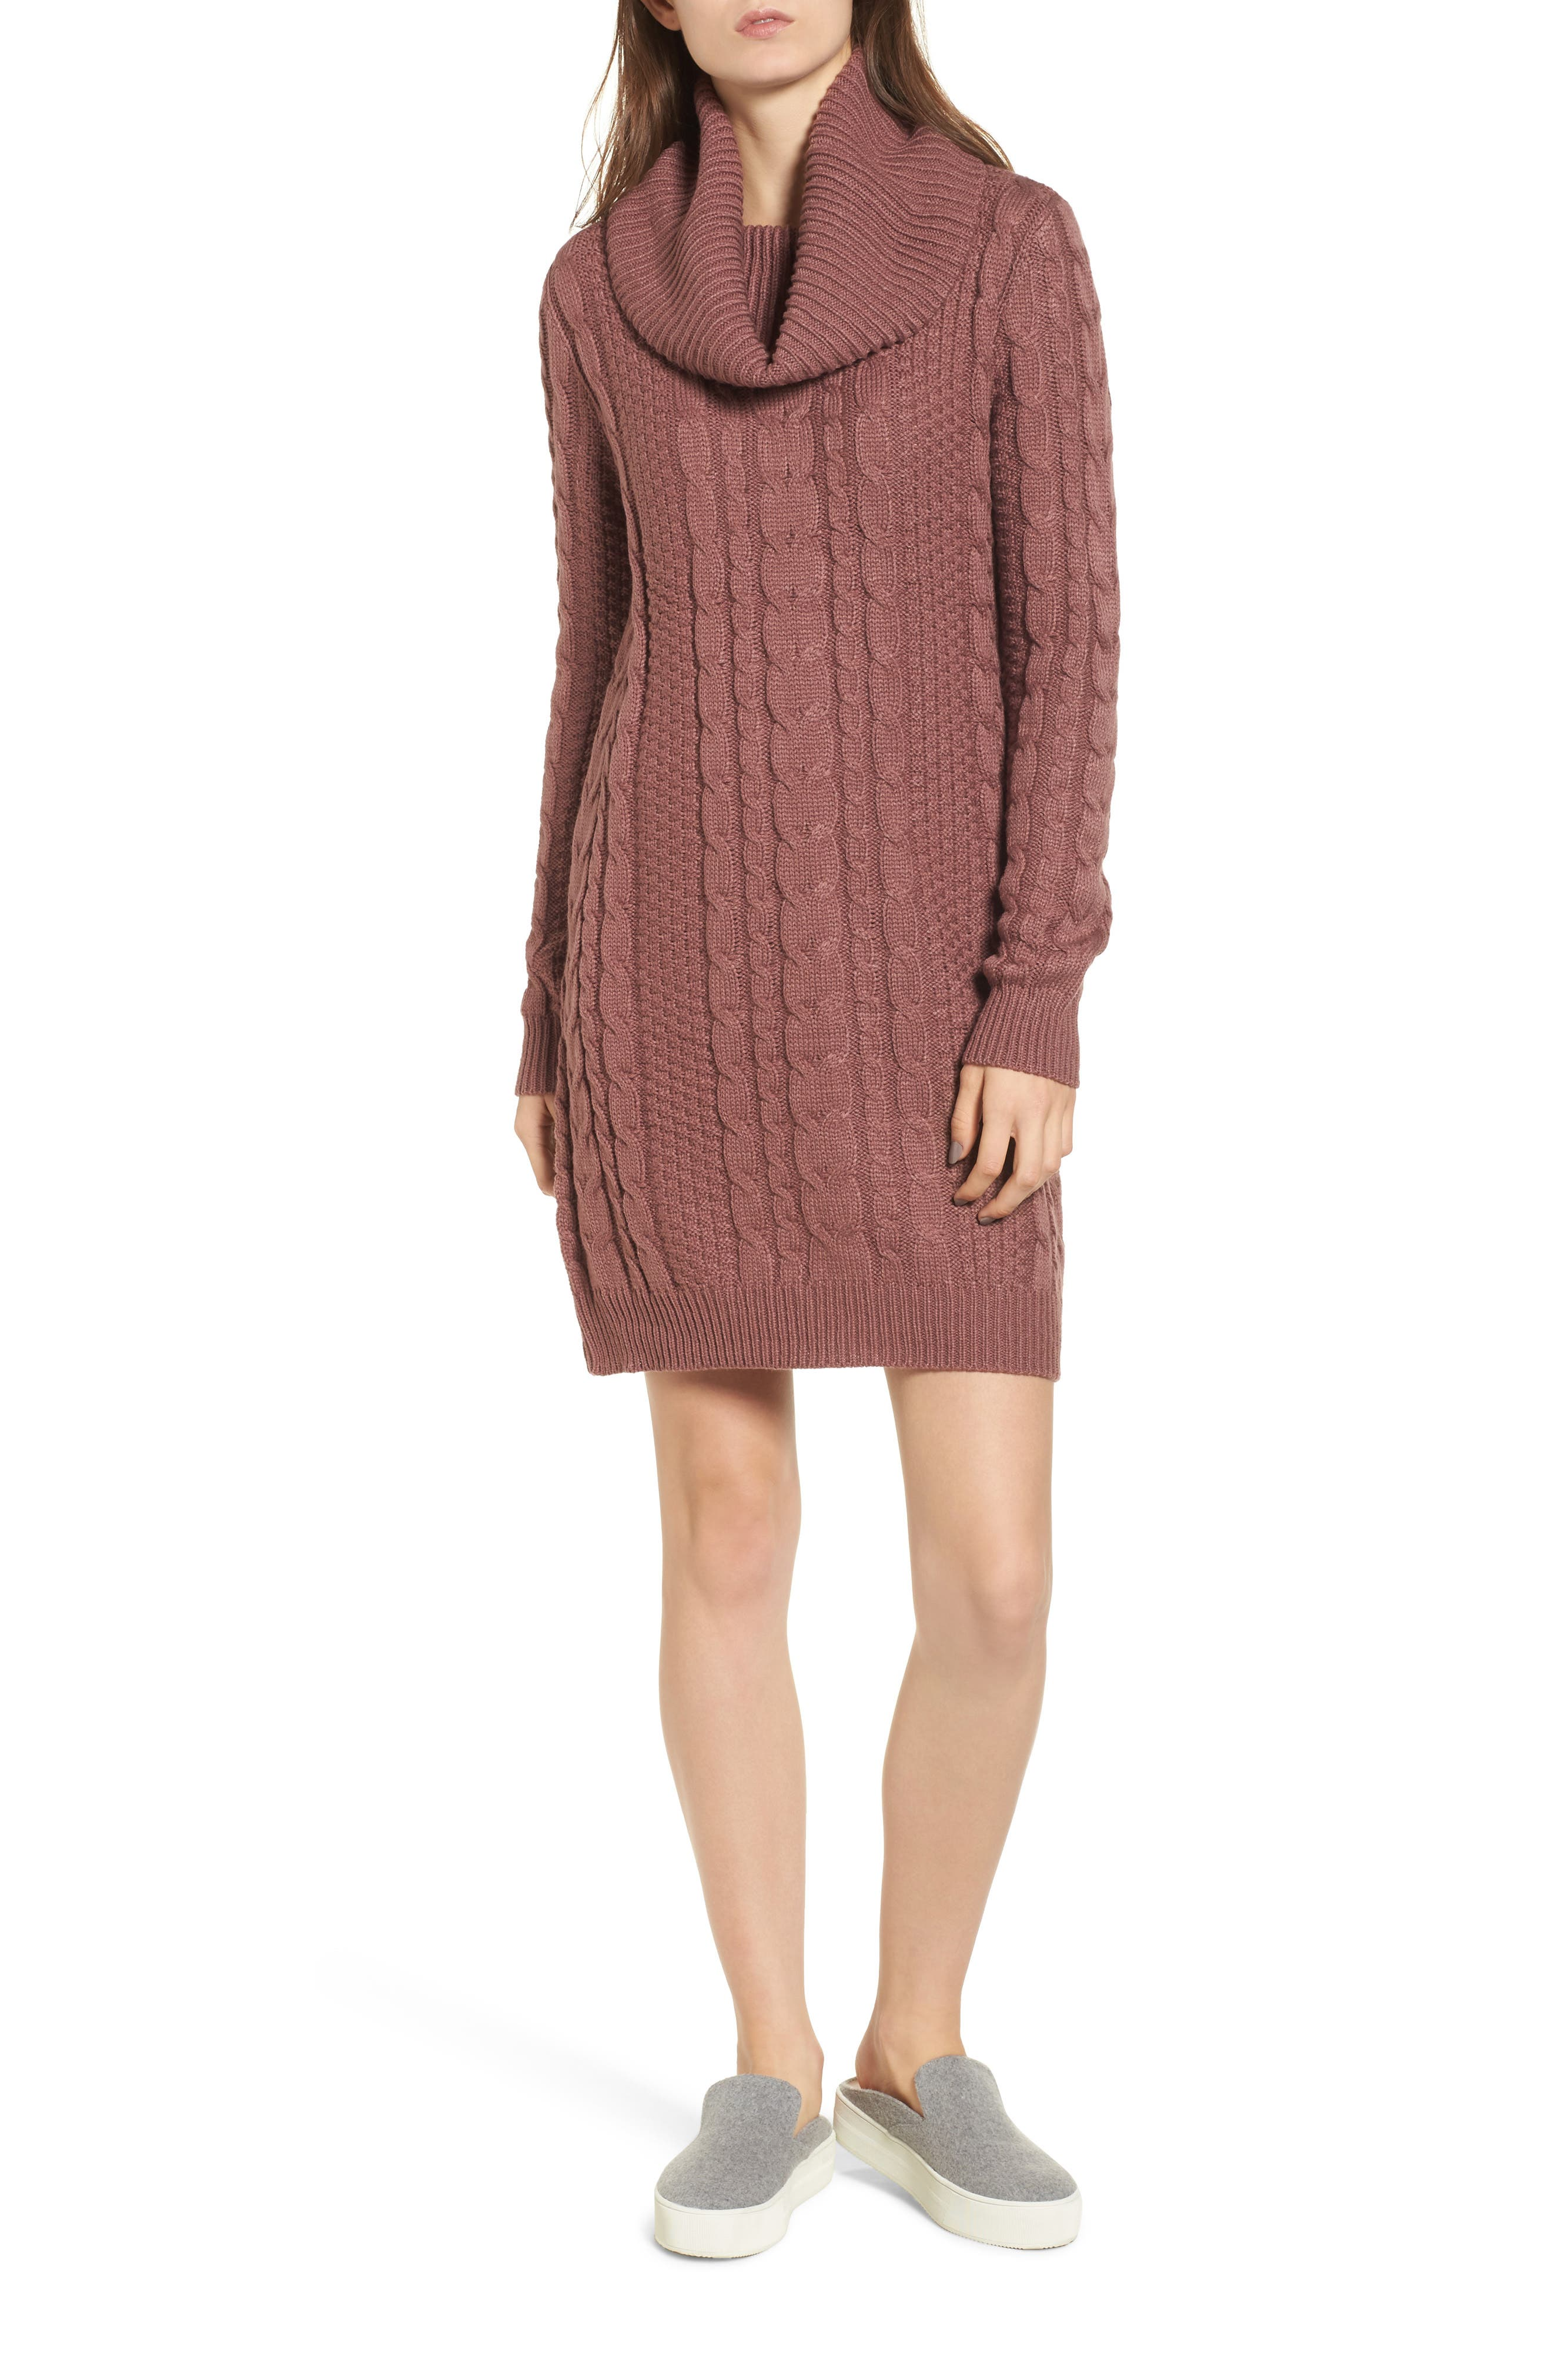 Everly Cowl Neck Sweater Dress